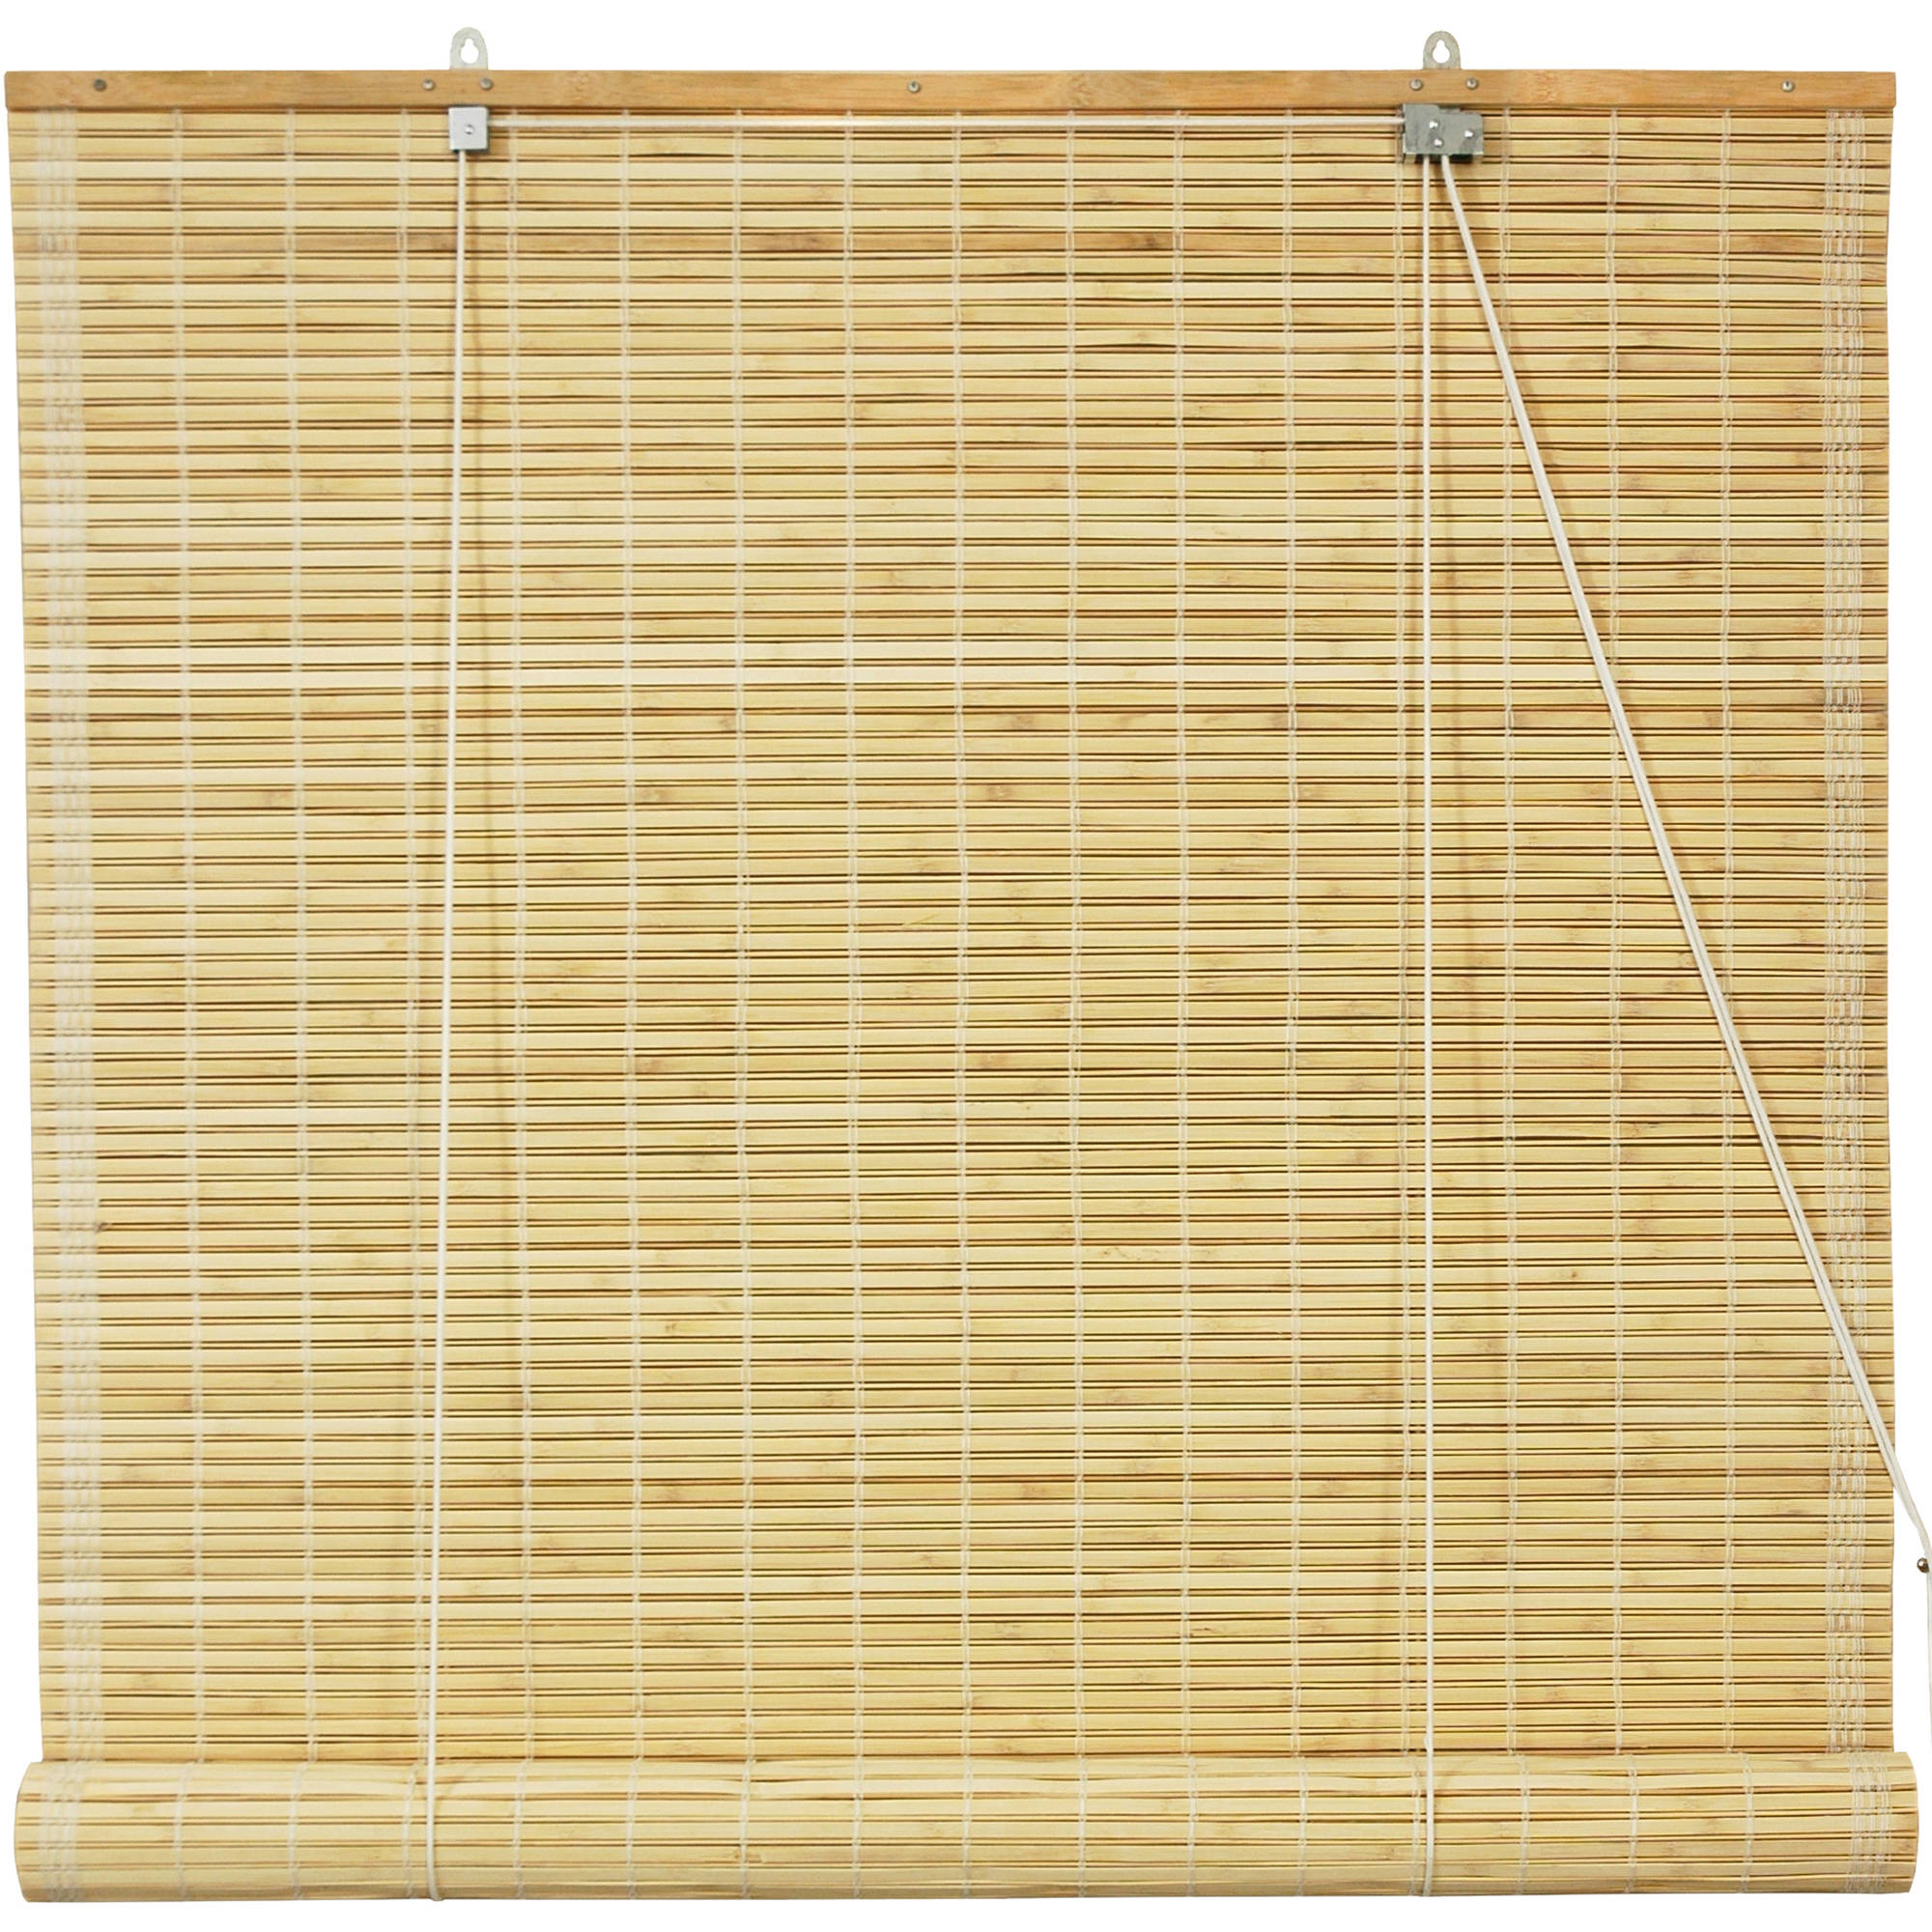 woven roll light roman shades natural pl shop com at treatments lowes up home blinds bamboo levolor filtering shade window decor